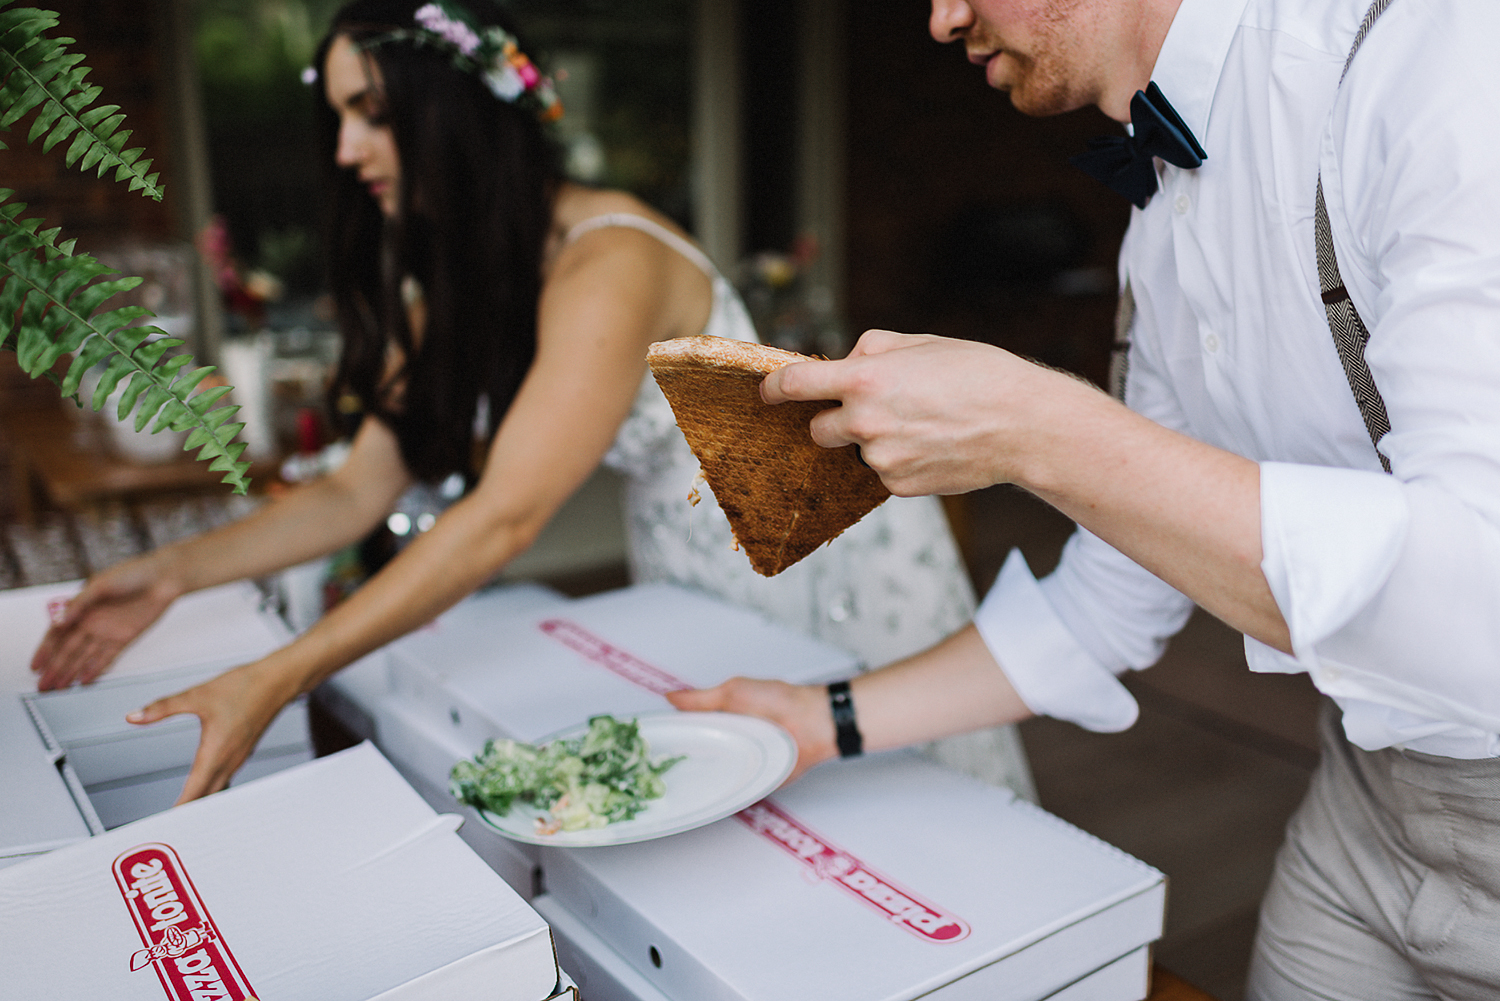 Backyard-toronto-film-photographer-ryanne-hollies-photography-diy-string-lights-and-lanterns-reception-dinner-documentary-wooden-harvest-tables-diy-decor-speeches-bride-and-groom-eating-pizza.jpg